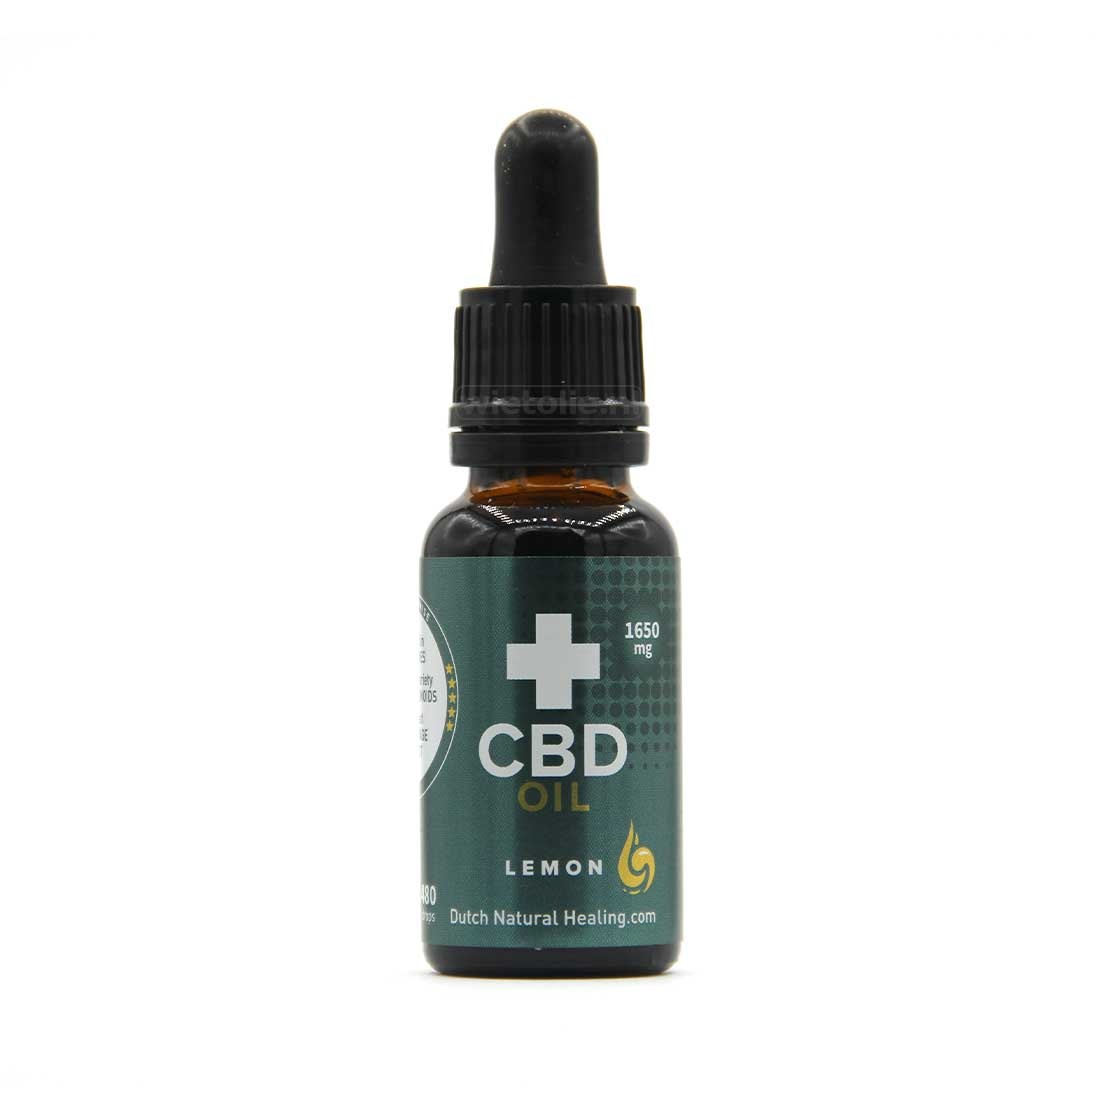 CBD-olie Dutch Natural Healing 8 procent 20 ml citroen 1